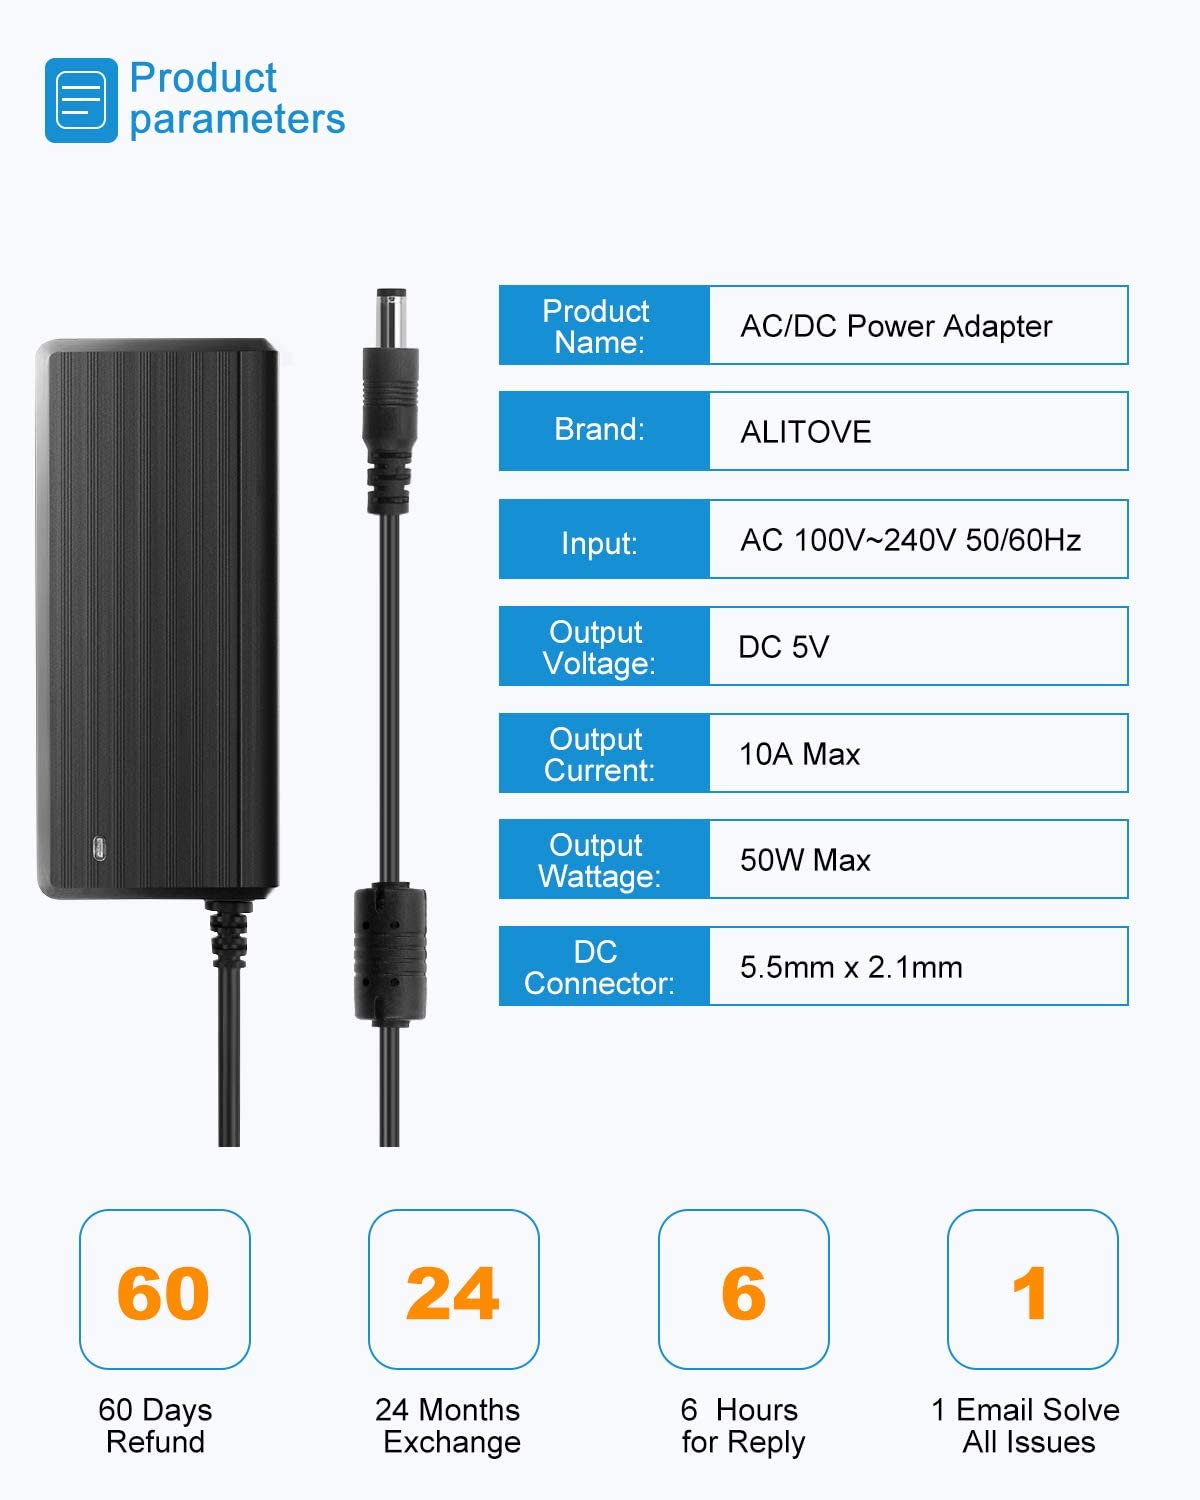 ALITOVE 30W Universal AC to DC Power Supply Adapter 3V 4.5V 5V 6V 7.5V 9V 12V Adjustable with 6 Adapter Tips /& USB Port for Household Electronics Routers TV Boxes LCD Speaker 0.5A 1A 1.5A 2A 2.5A Max.